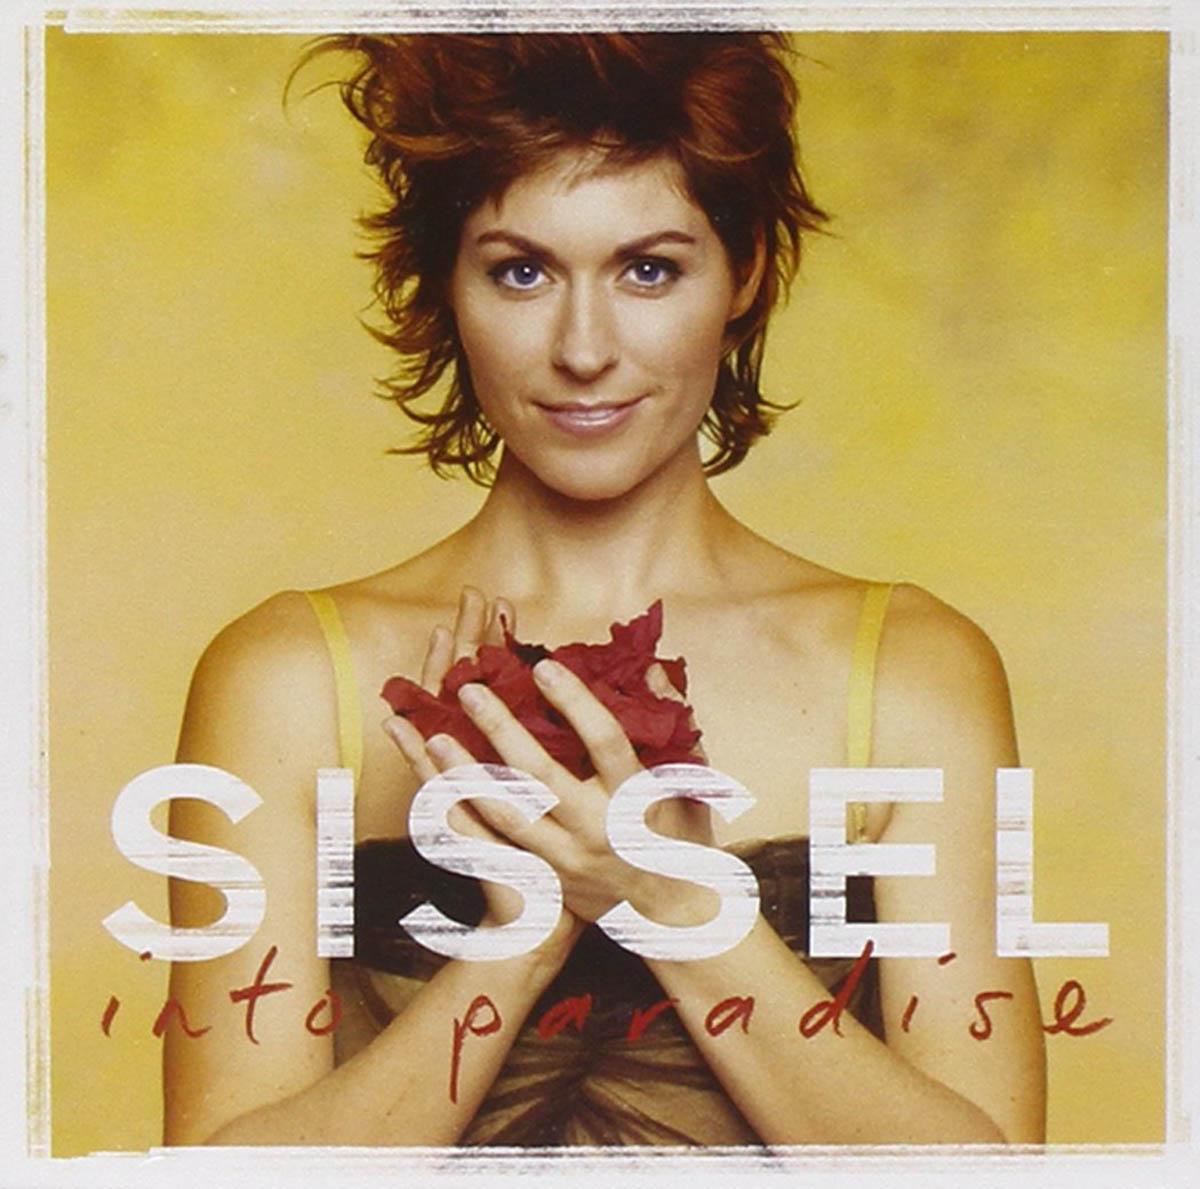 Sissel, Into Paradise